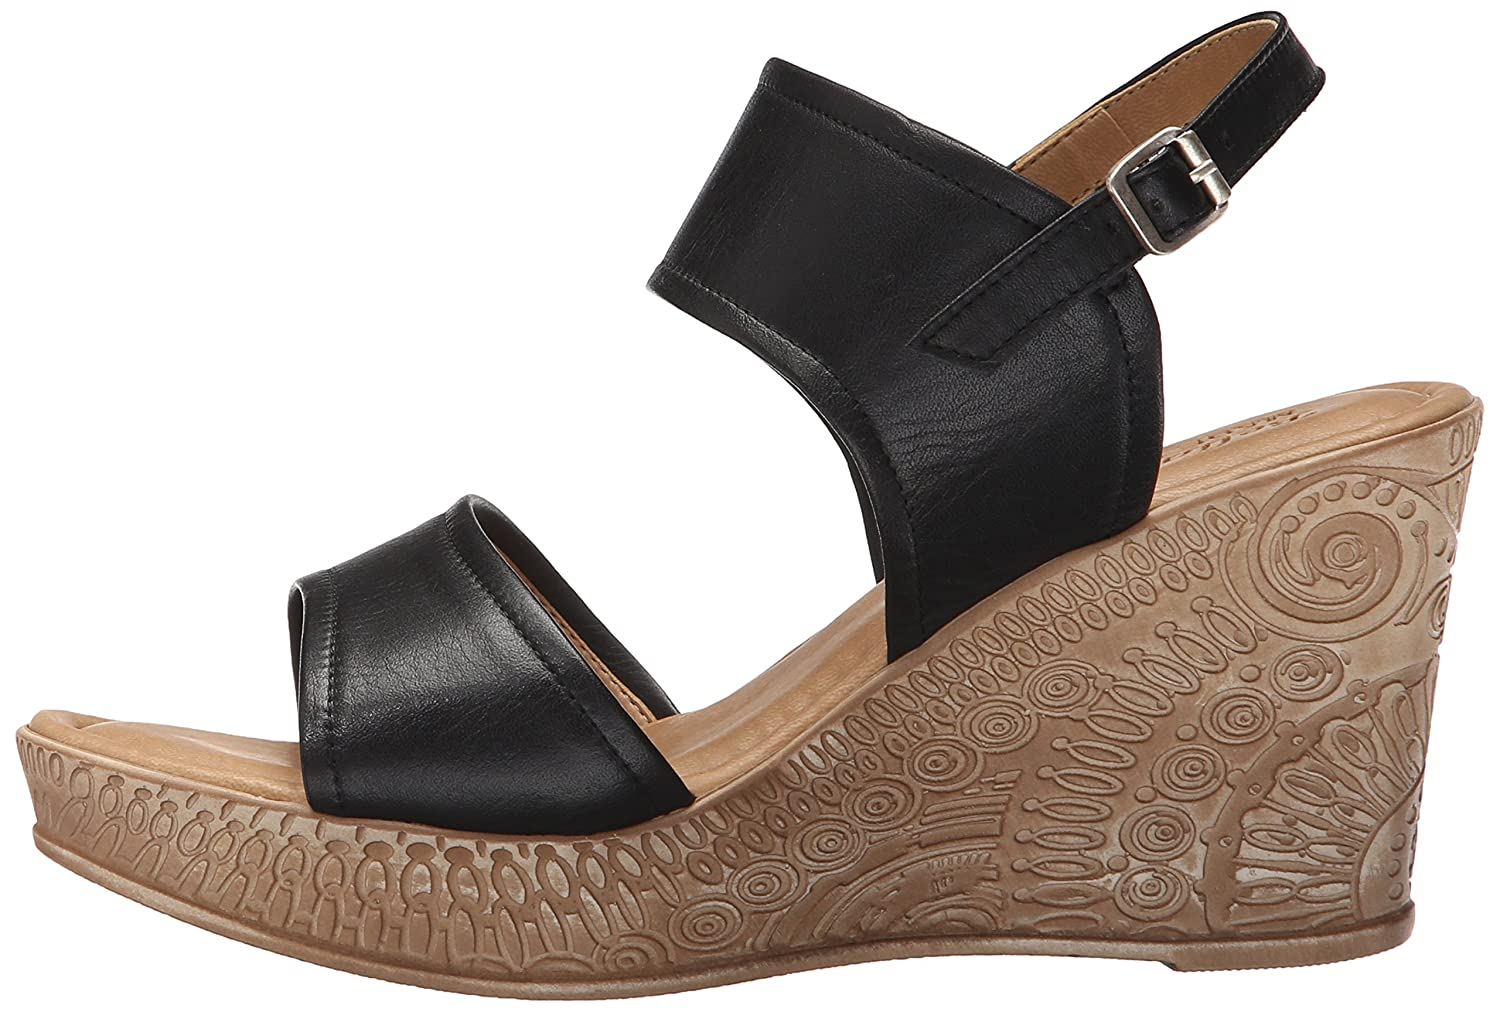 Bella Vita Women's Nicola Wedge Sandal B0163GICEA 9.5 B(M) US|Black